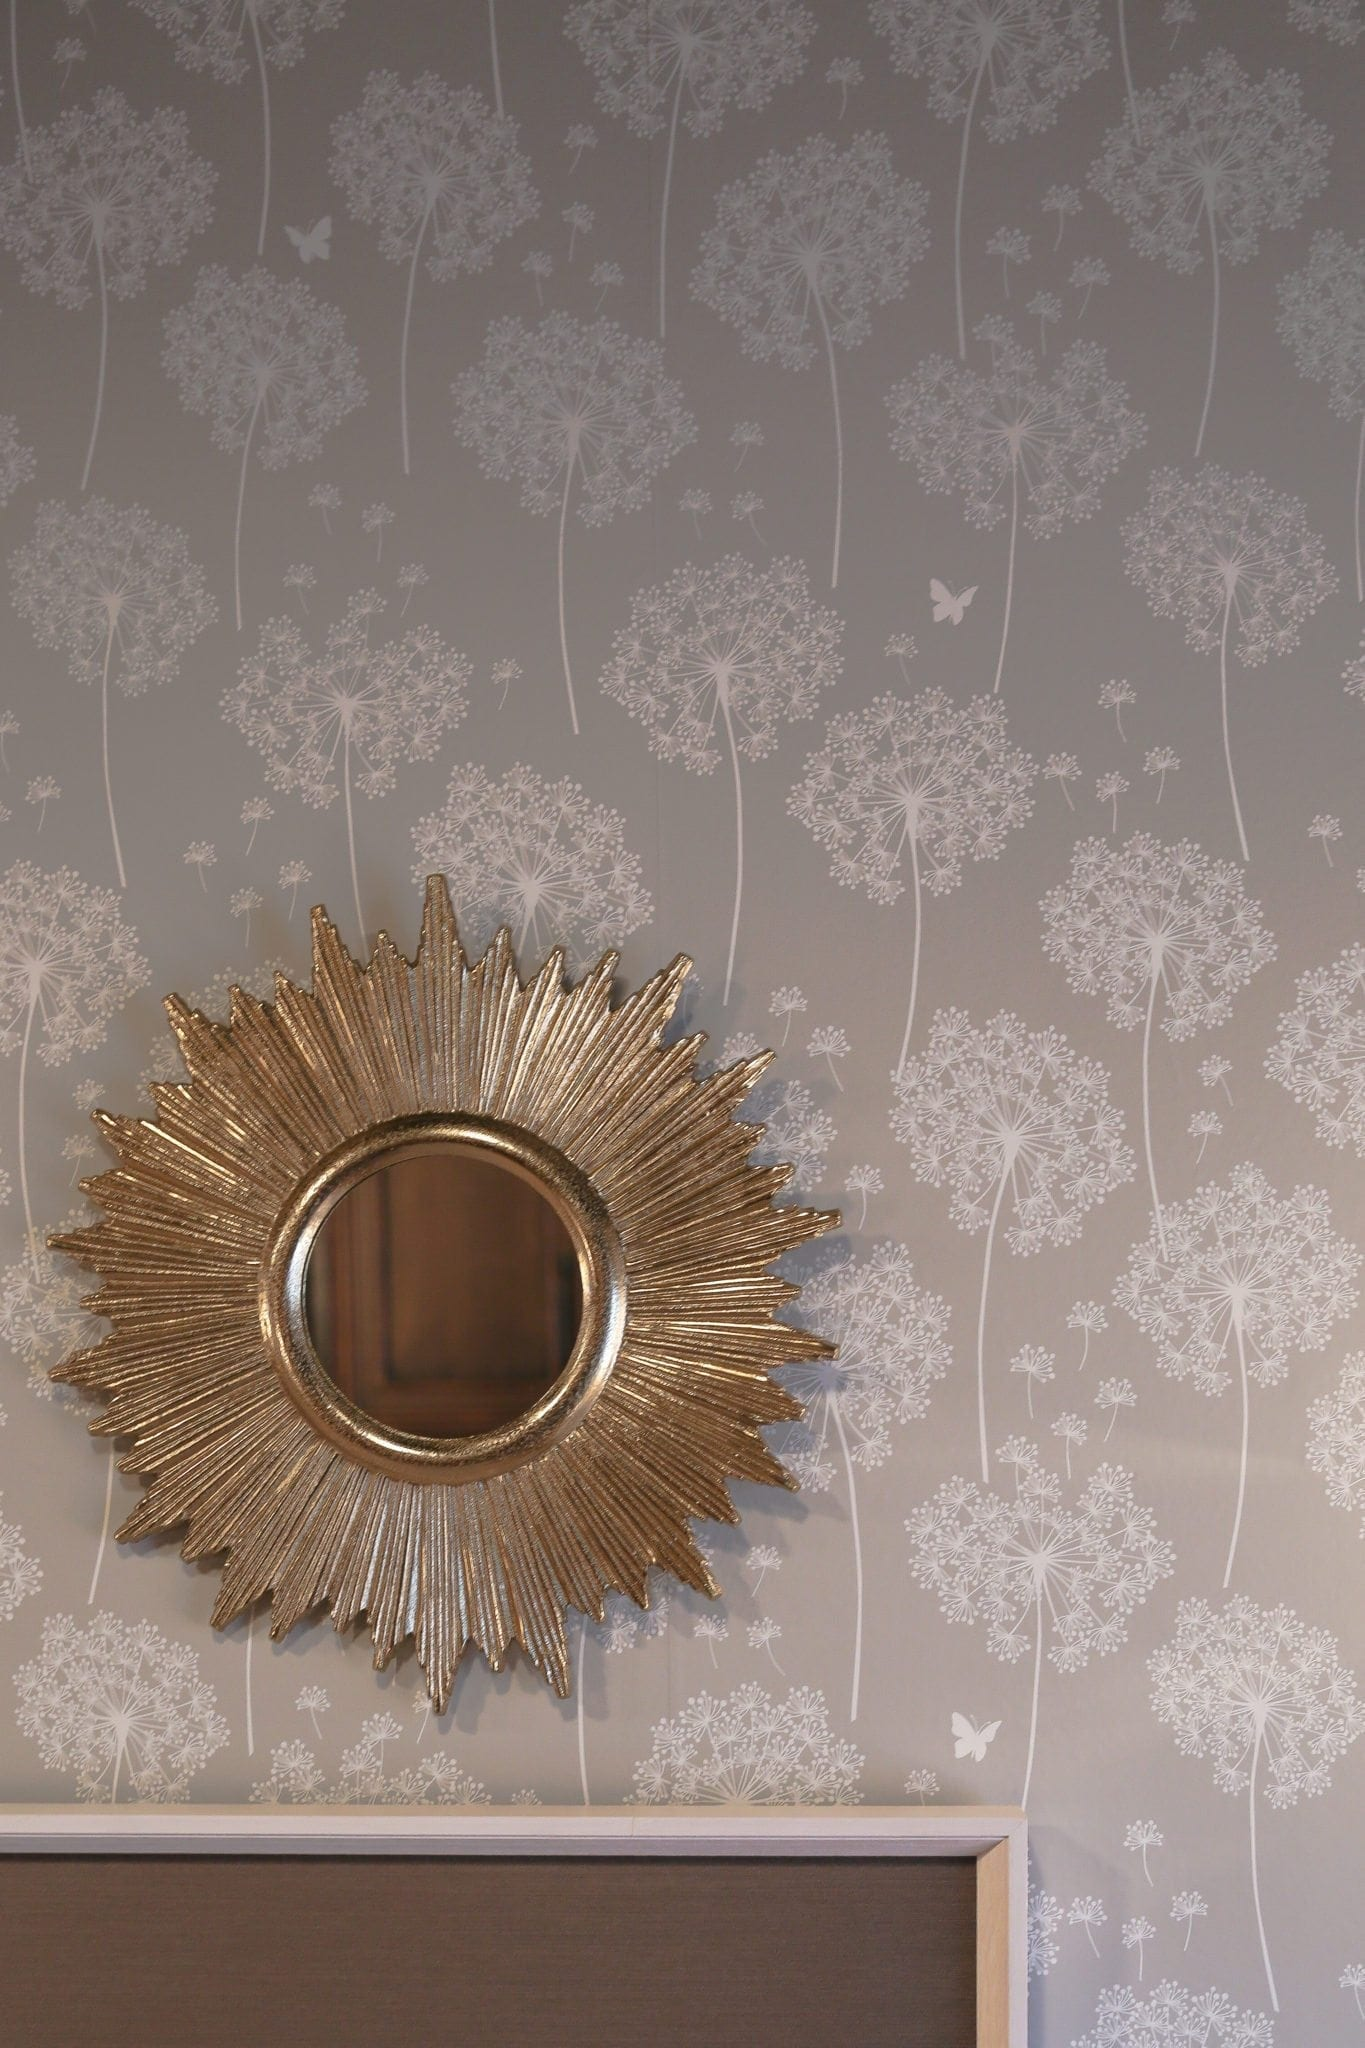 Starburst gold mirror with gray reusable wallpaper.